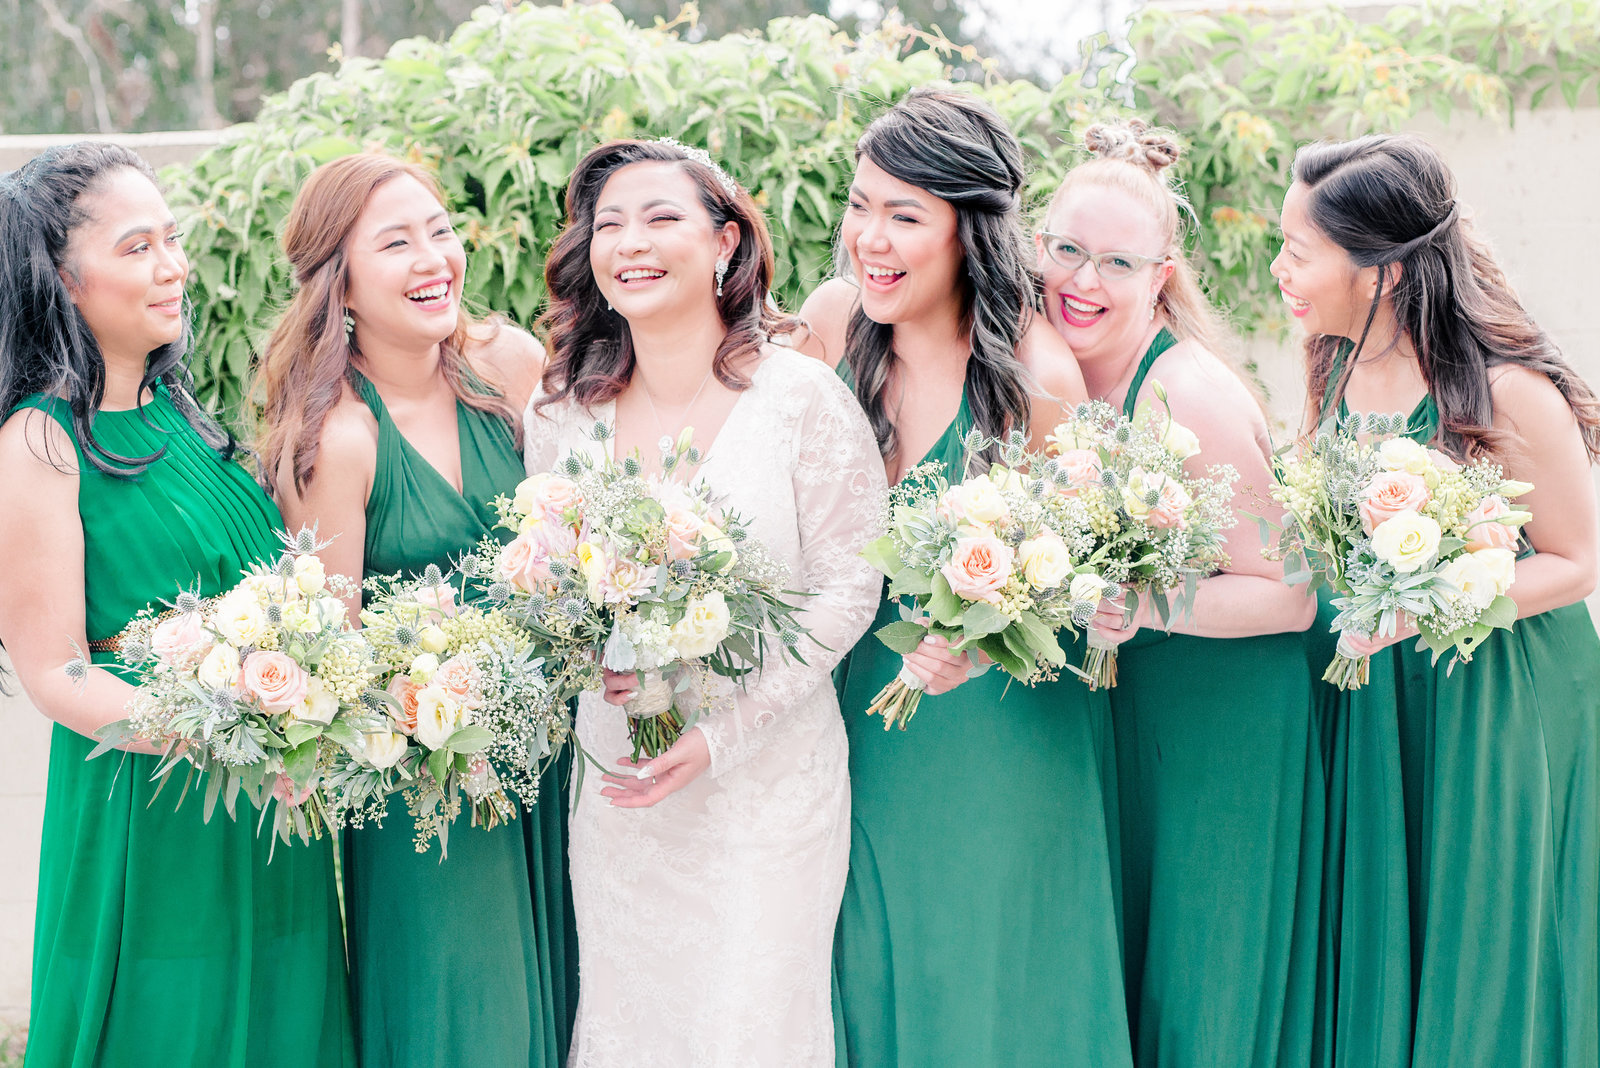 Bridal Party with emerald green dress Costa Mesa Wedding